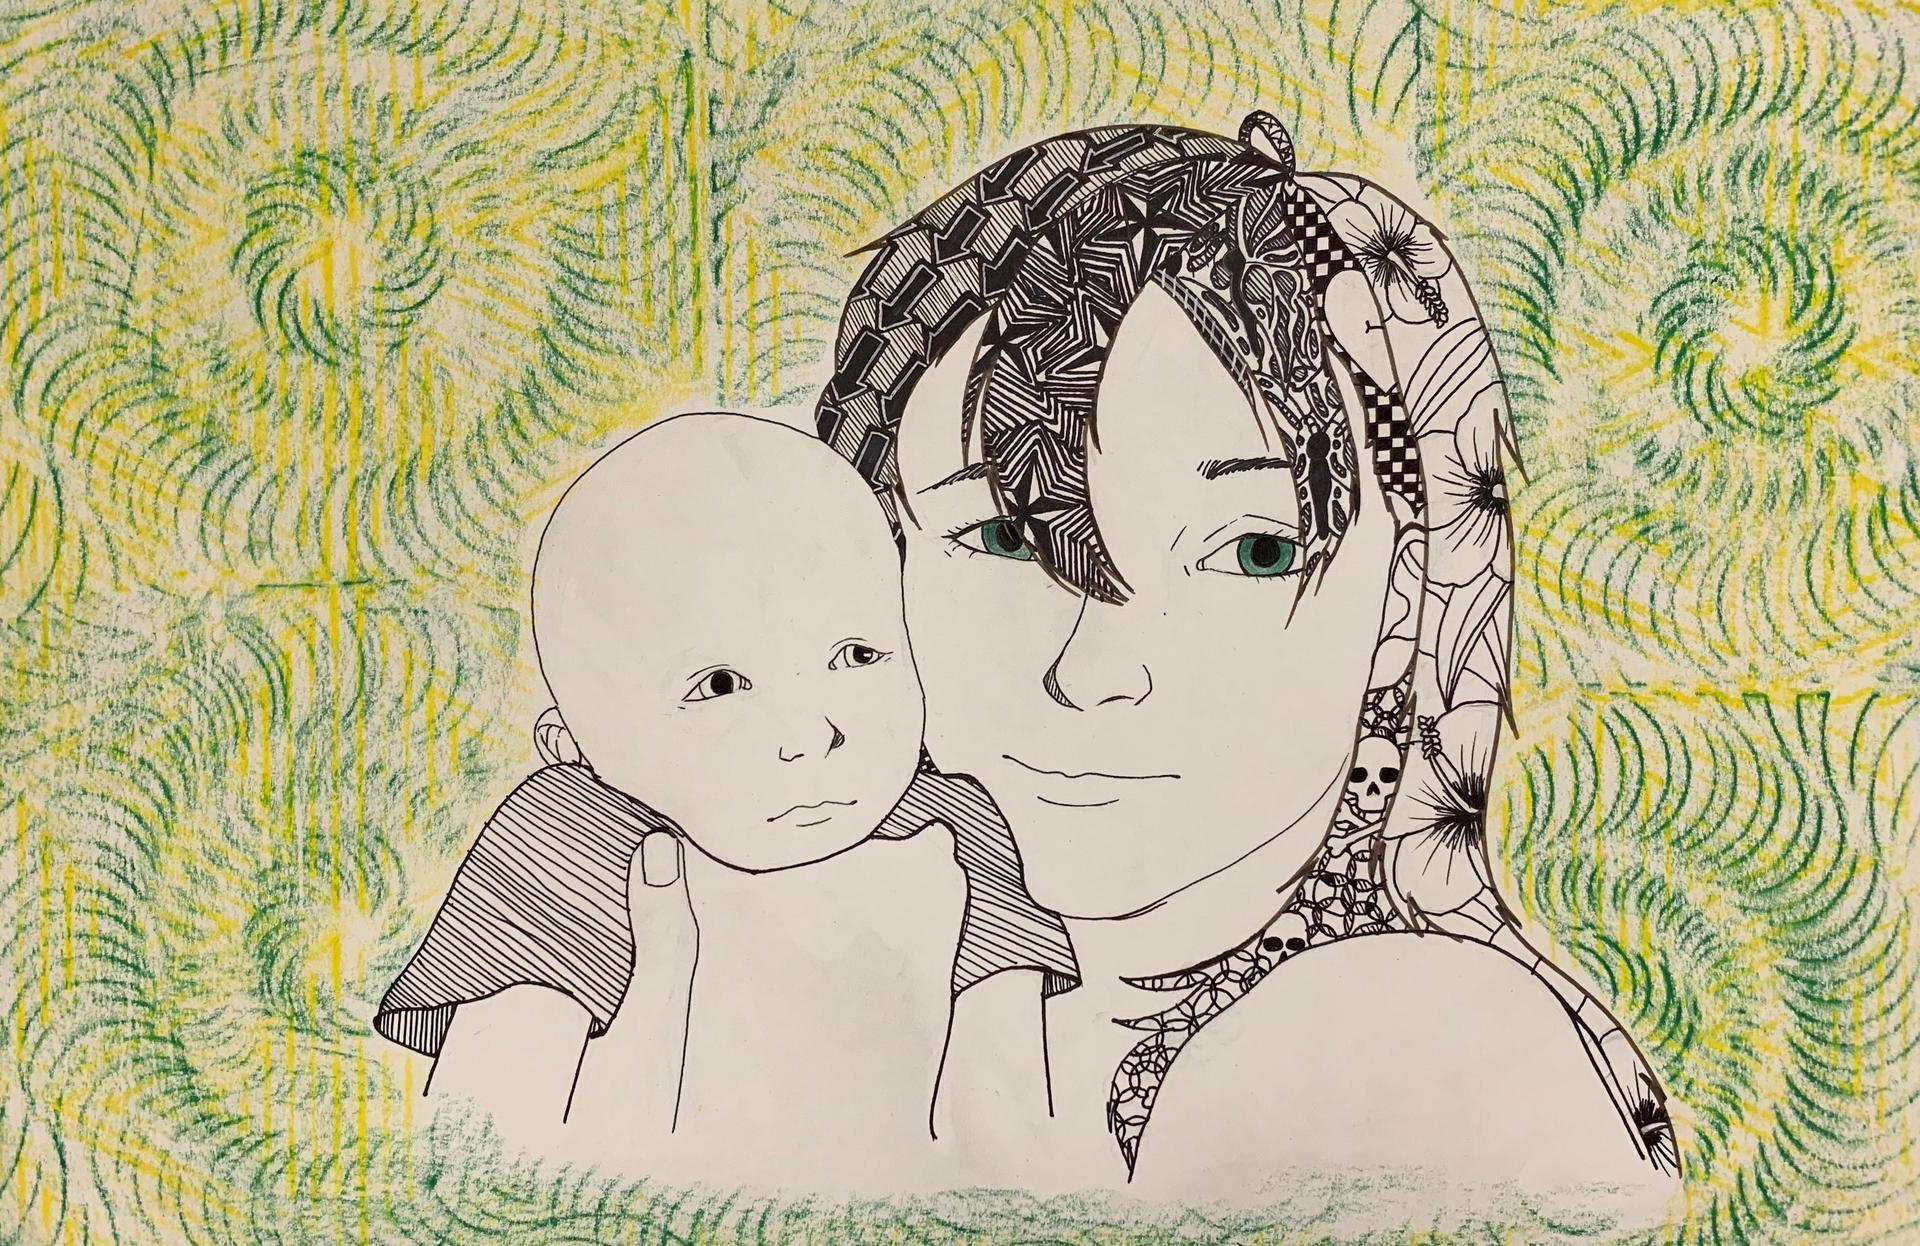 Drawing of a mother and child